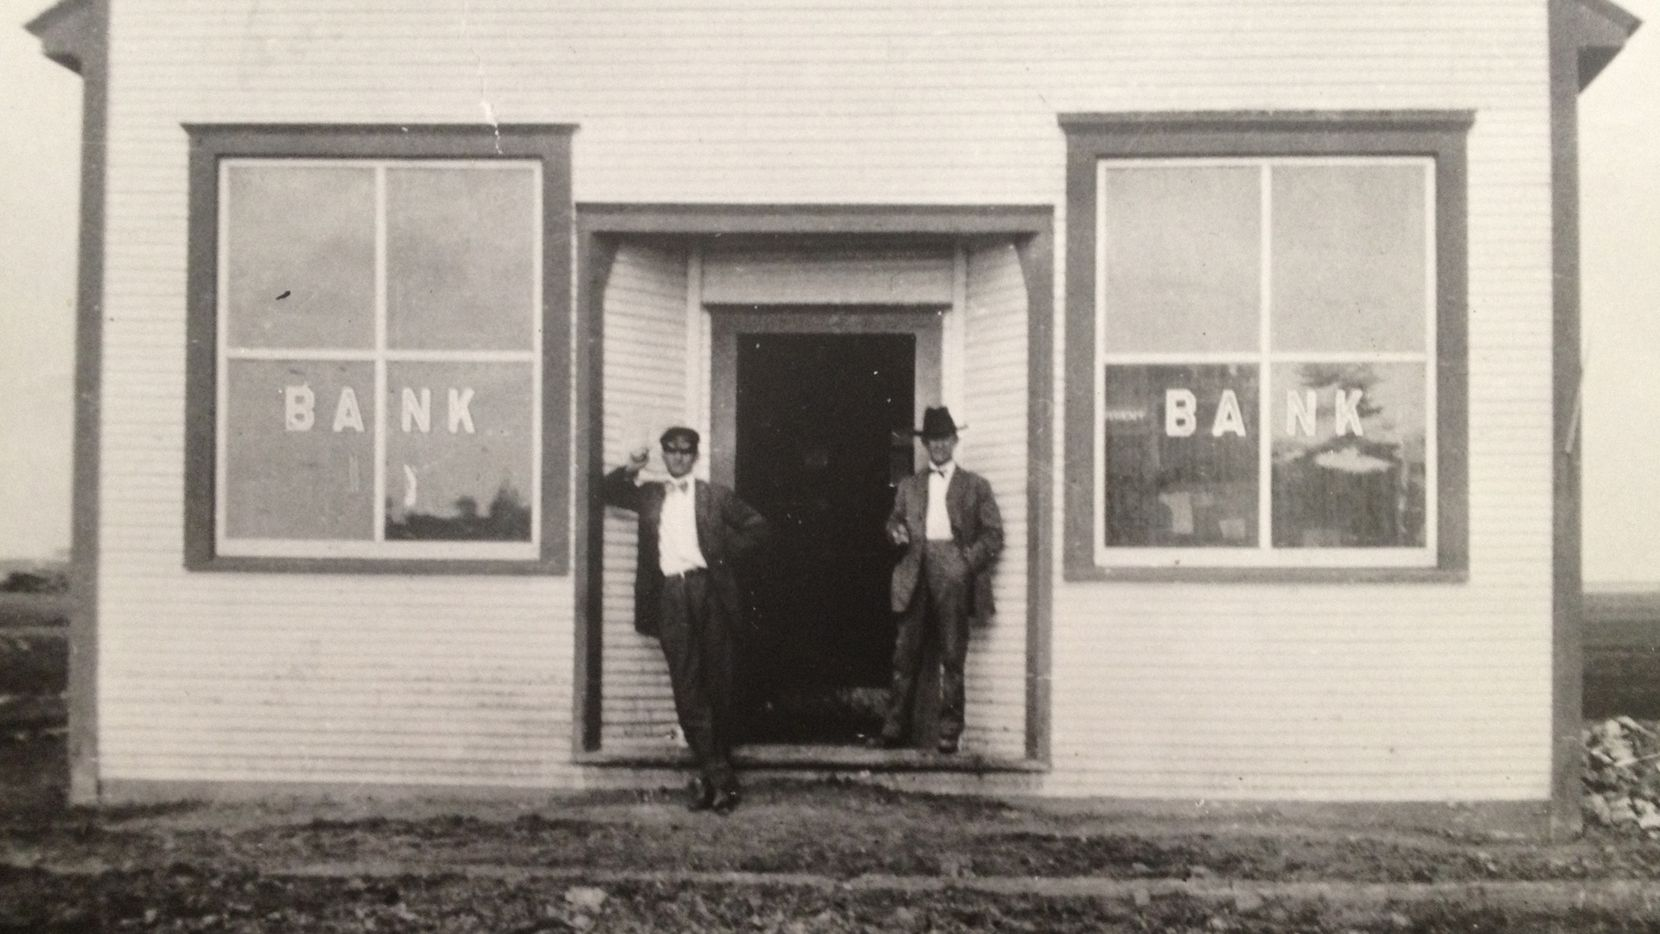 On Jan. 25, 1912 W.E. McLaughlin (right) opened the doors to his bank in the new town of Ralls with the help of his middle son, Edd McLaughlin. The bank was founded with $11,000 under the name of W.E. McLaughlin, Banker, Unincorporated. It's now Vista Bank.